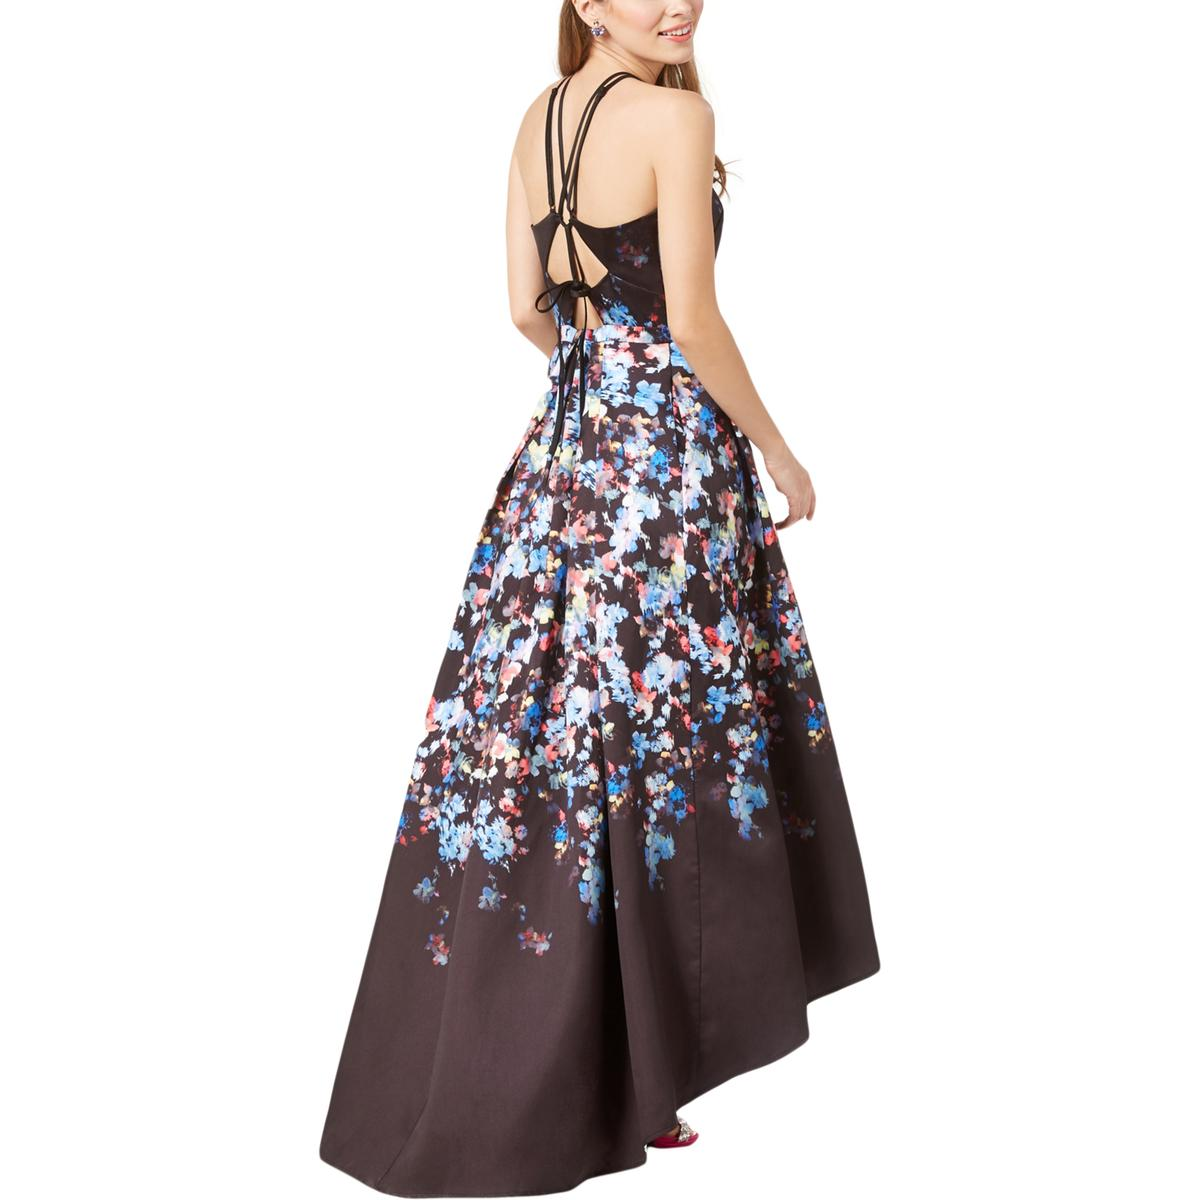 20ab10b90 Details about Morgan & Co. Womens Black Floral Special Occasion Dress Gown  Juniors 1 BHFO 7620